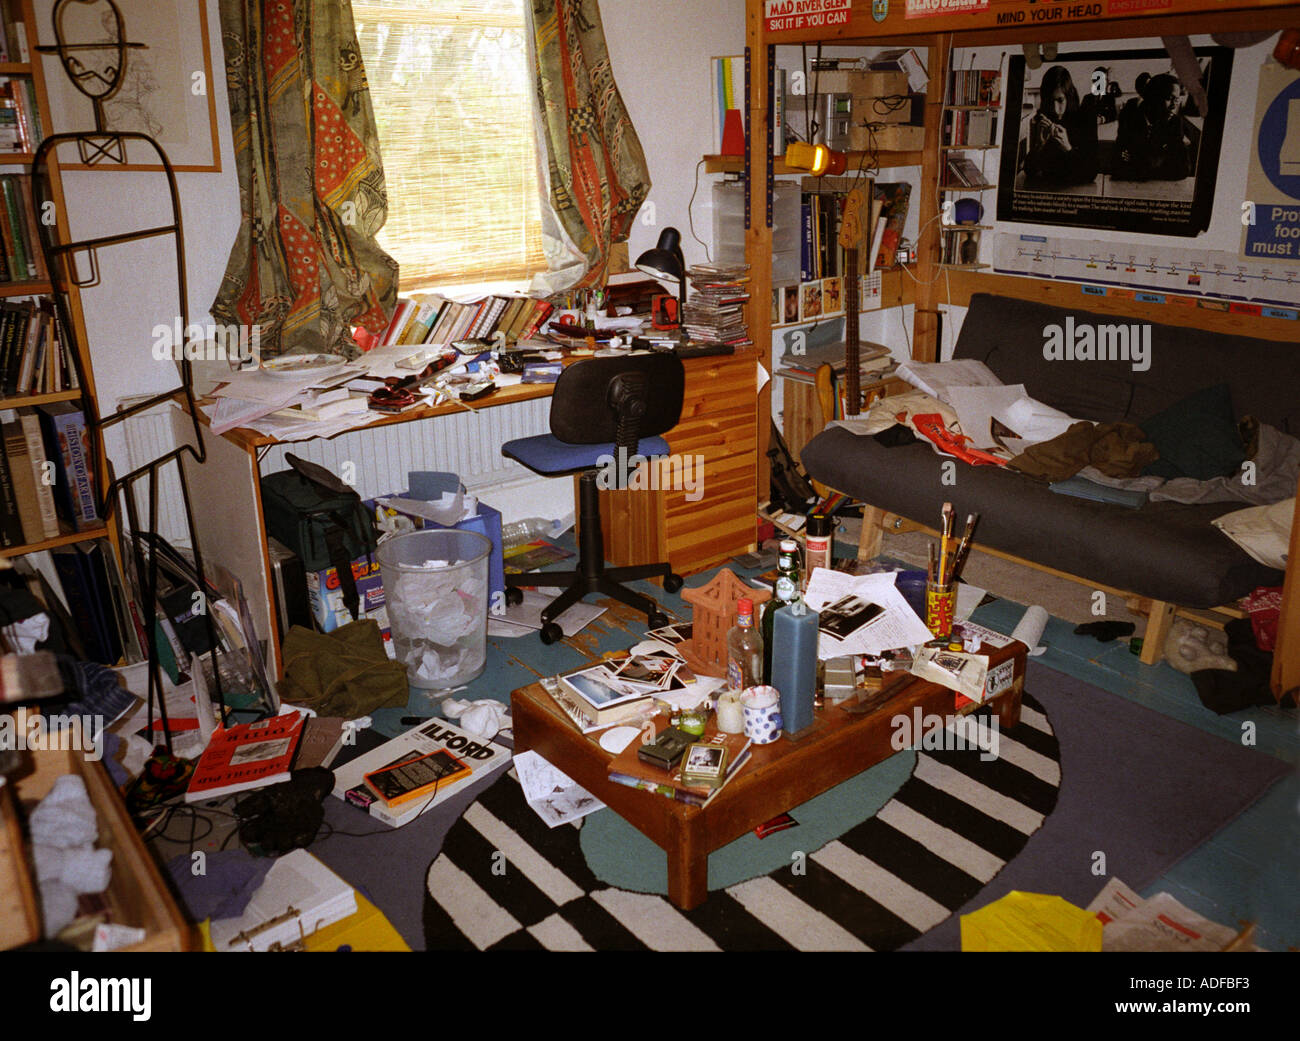 Extremely messy teenage bedroom stock photo 916467 alamy for Small dirty room 7 letters